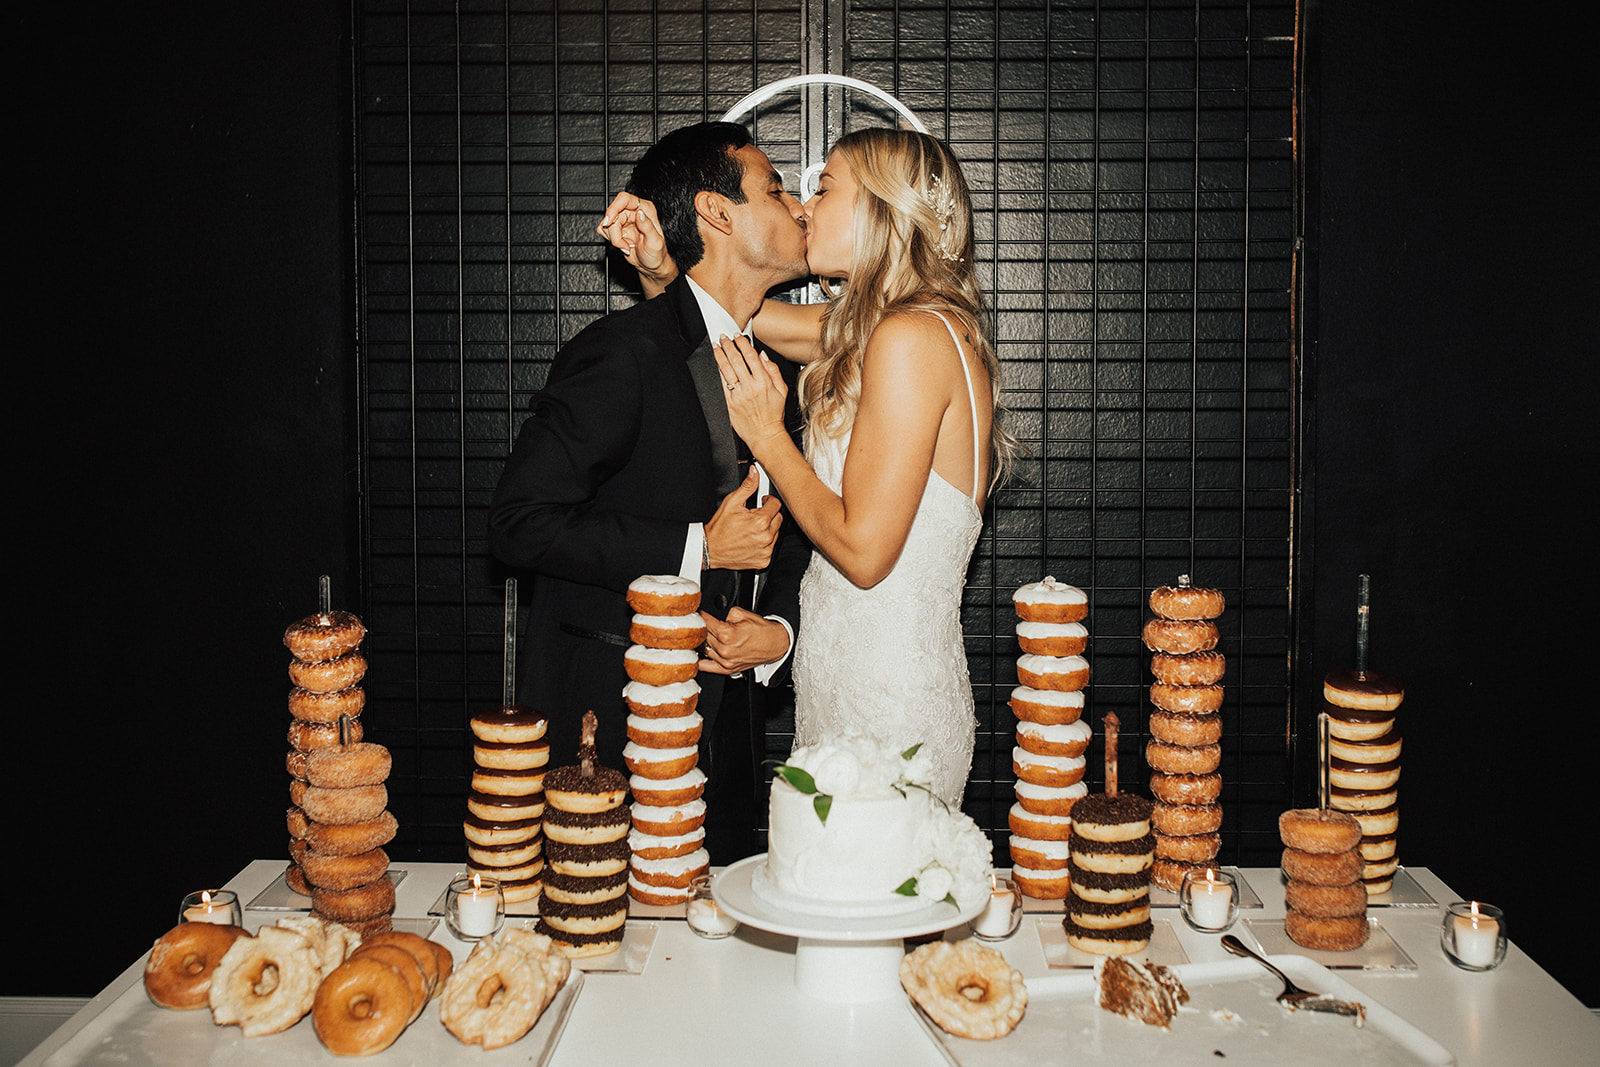 Wedding Desserts That Aren't Cake featured on Alexa Kay Events!